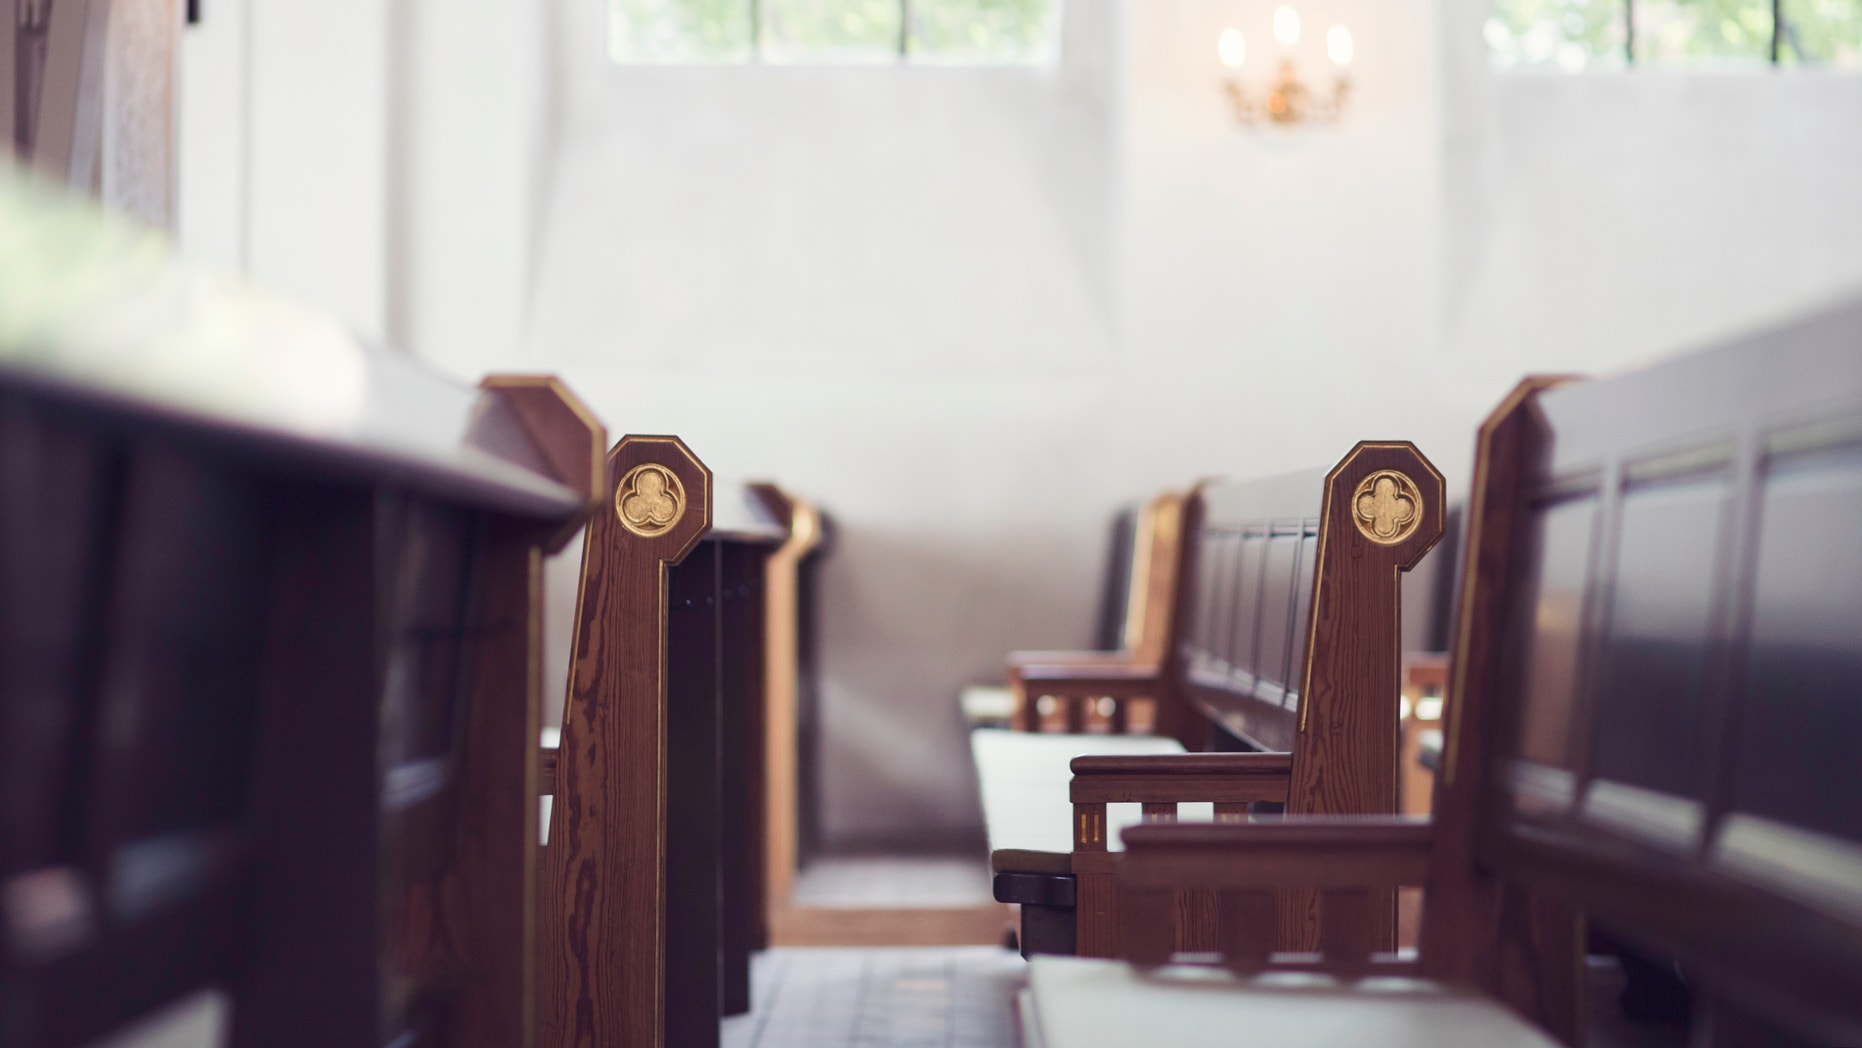 Two rows of benches in a church